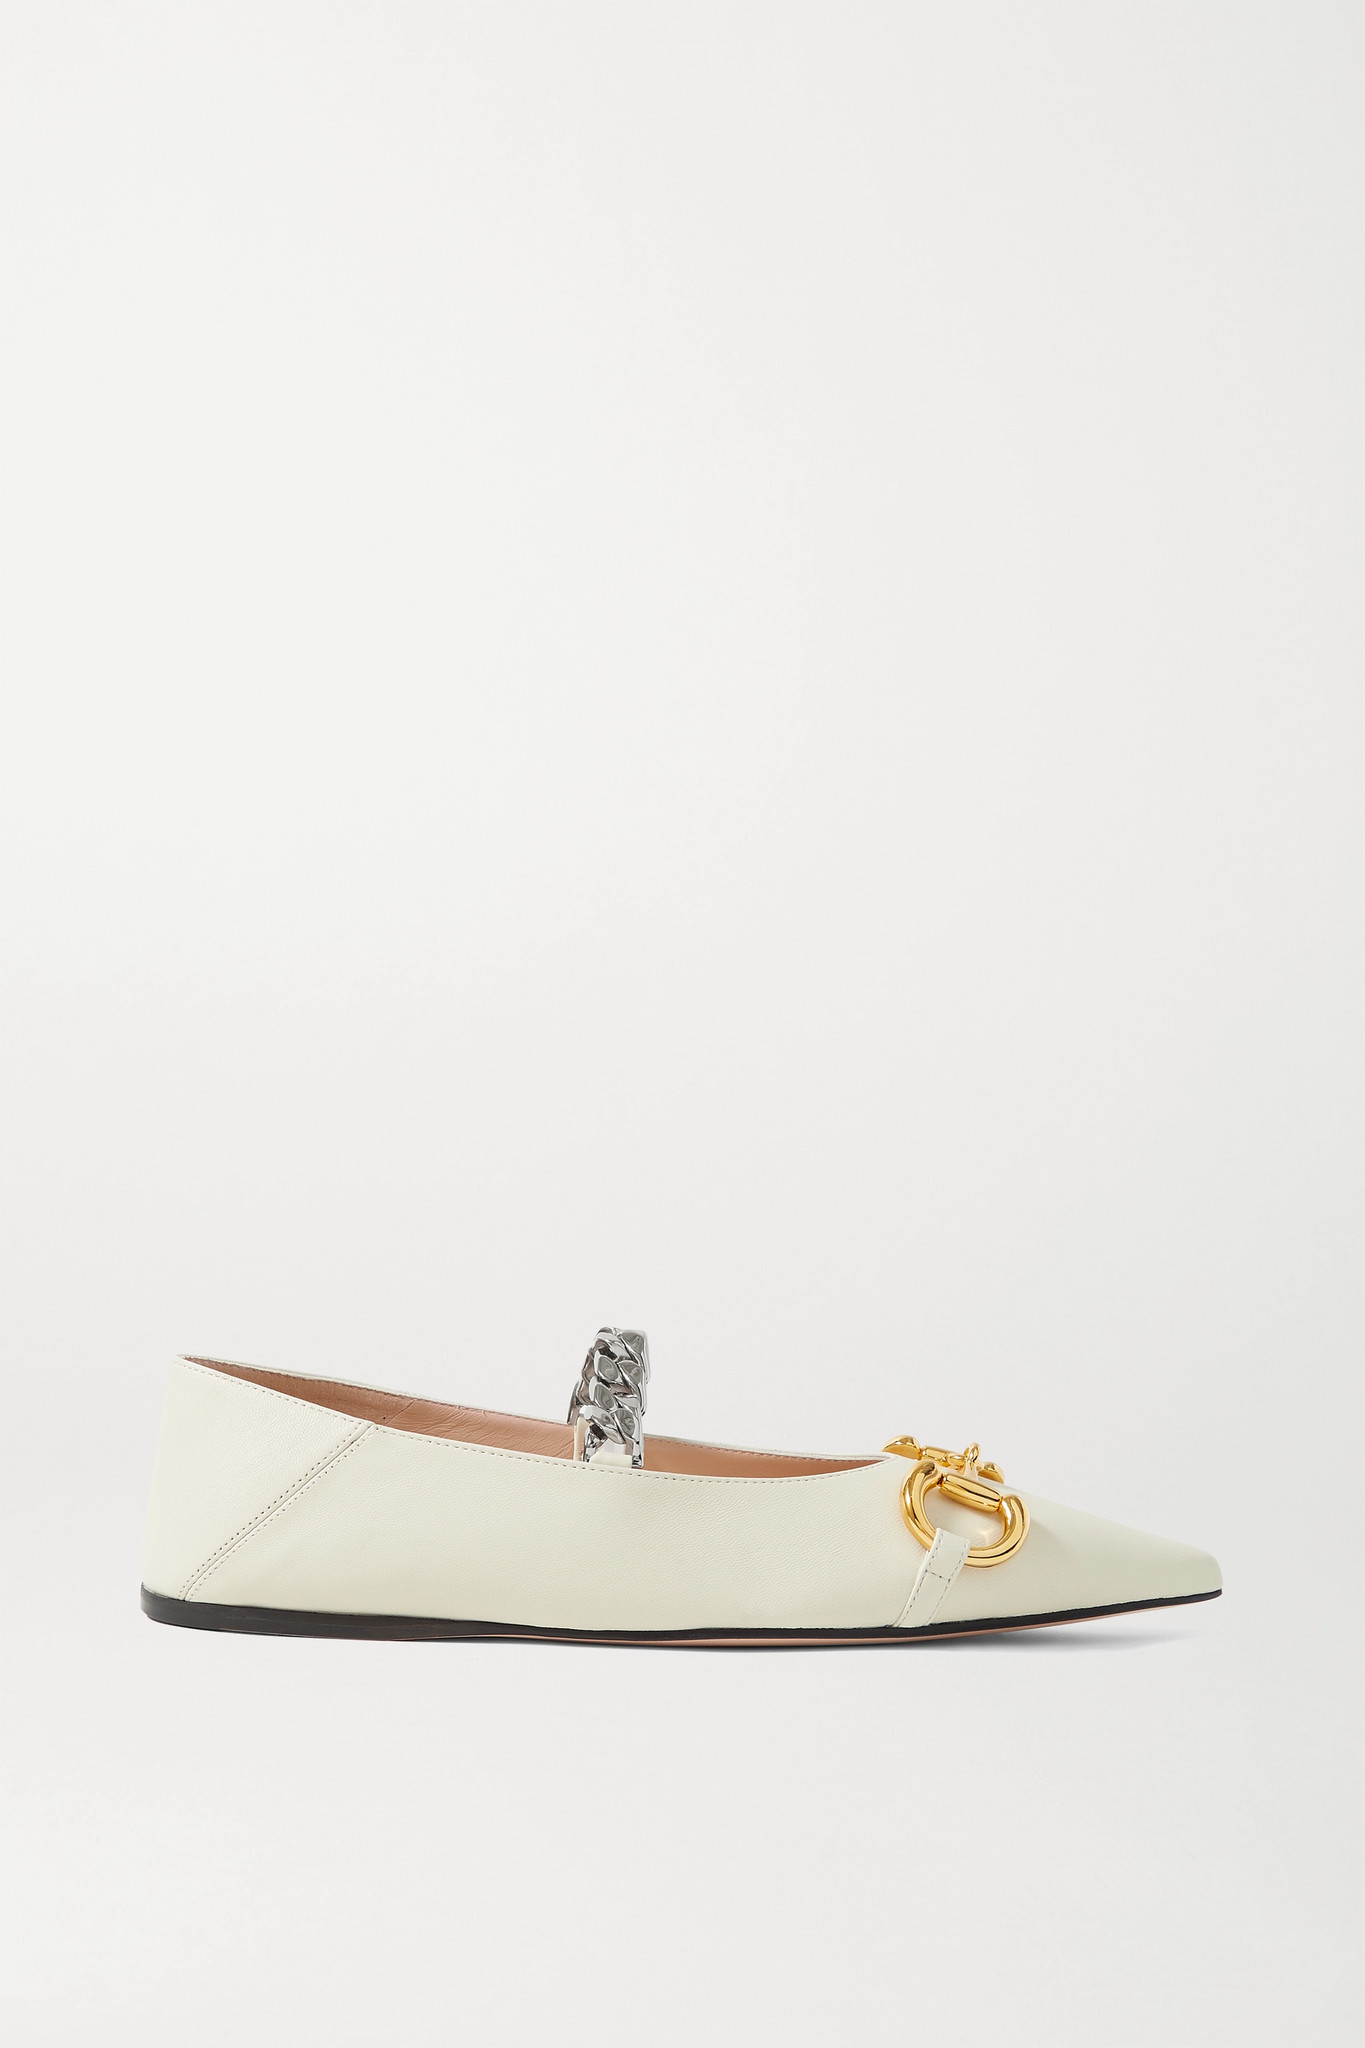 GUCCI - Deva Embellished Leather Collapsible-heel Point-toe Flats - Off-white - IT38.5